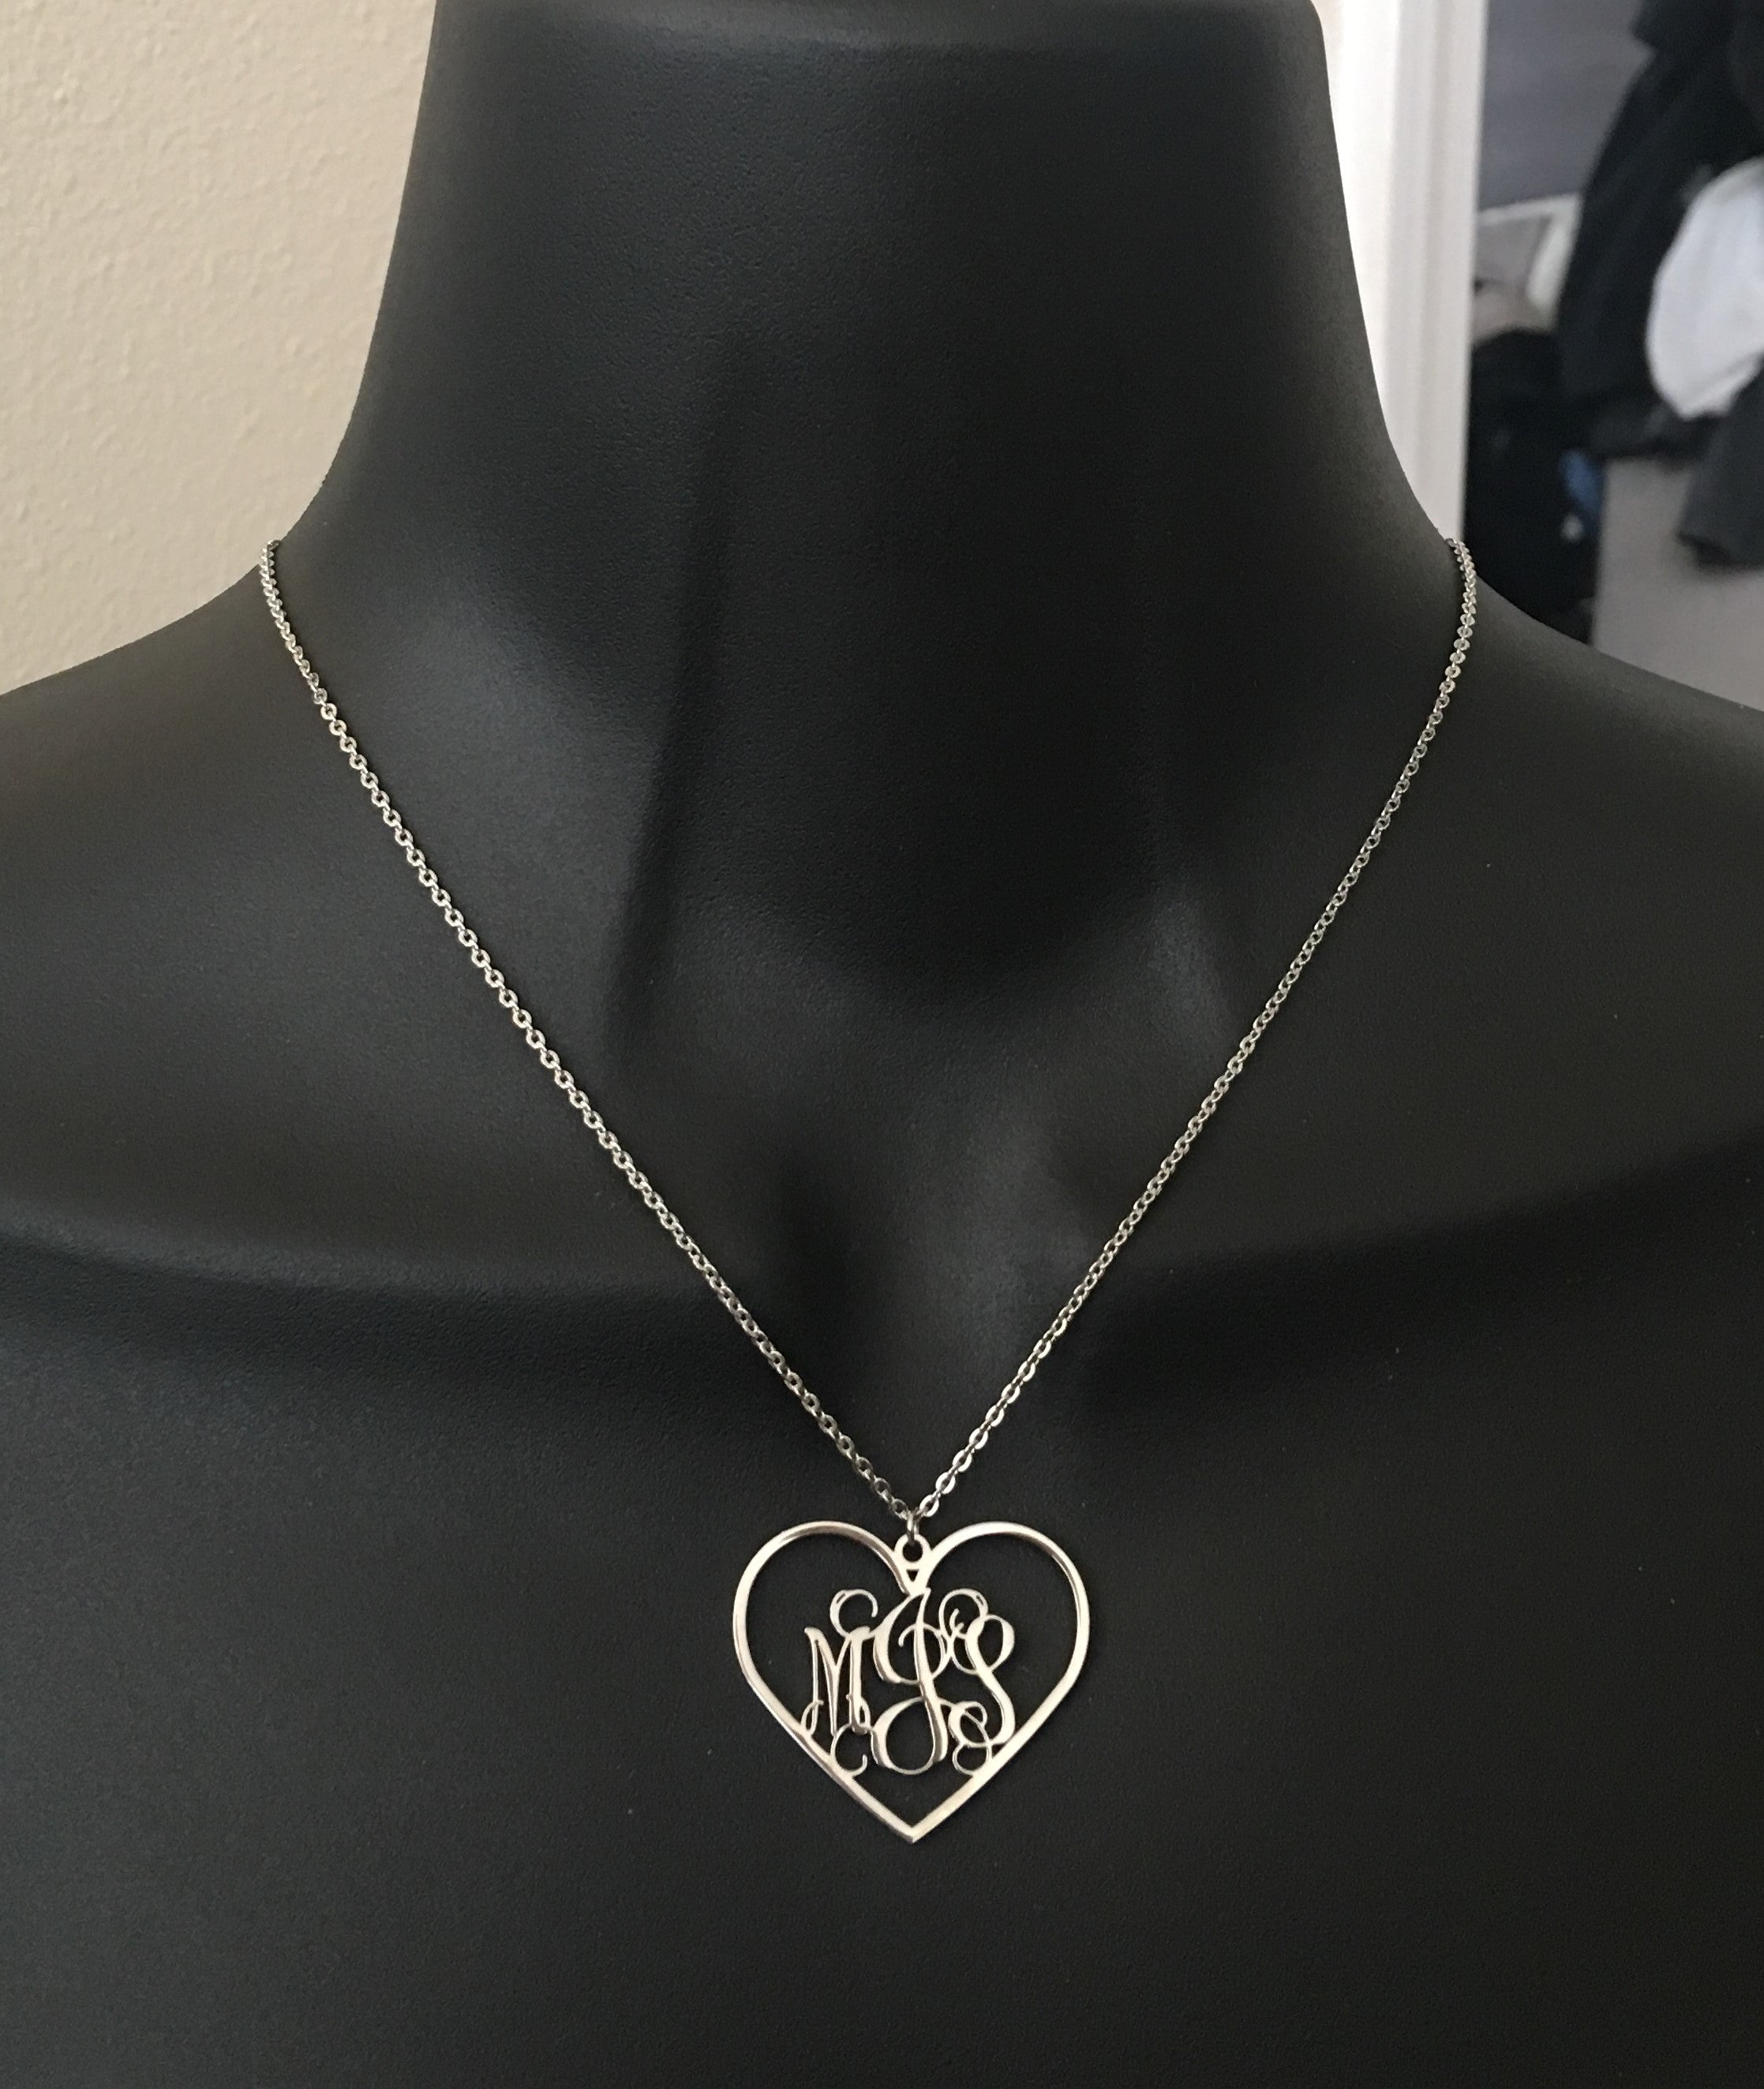 Personalized, heart monogram initial necklace